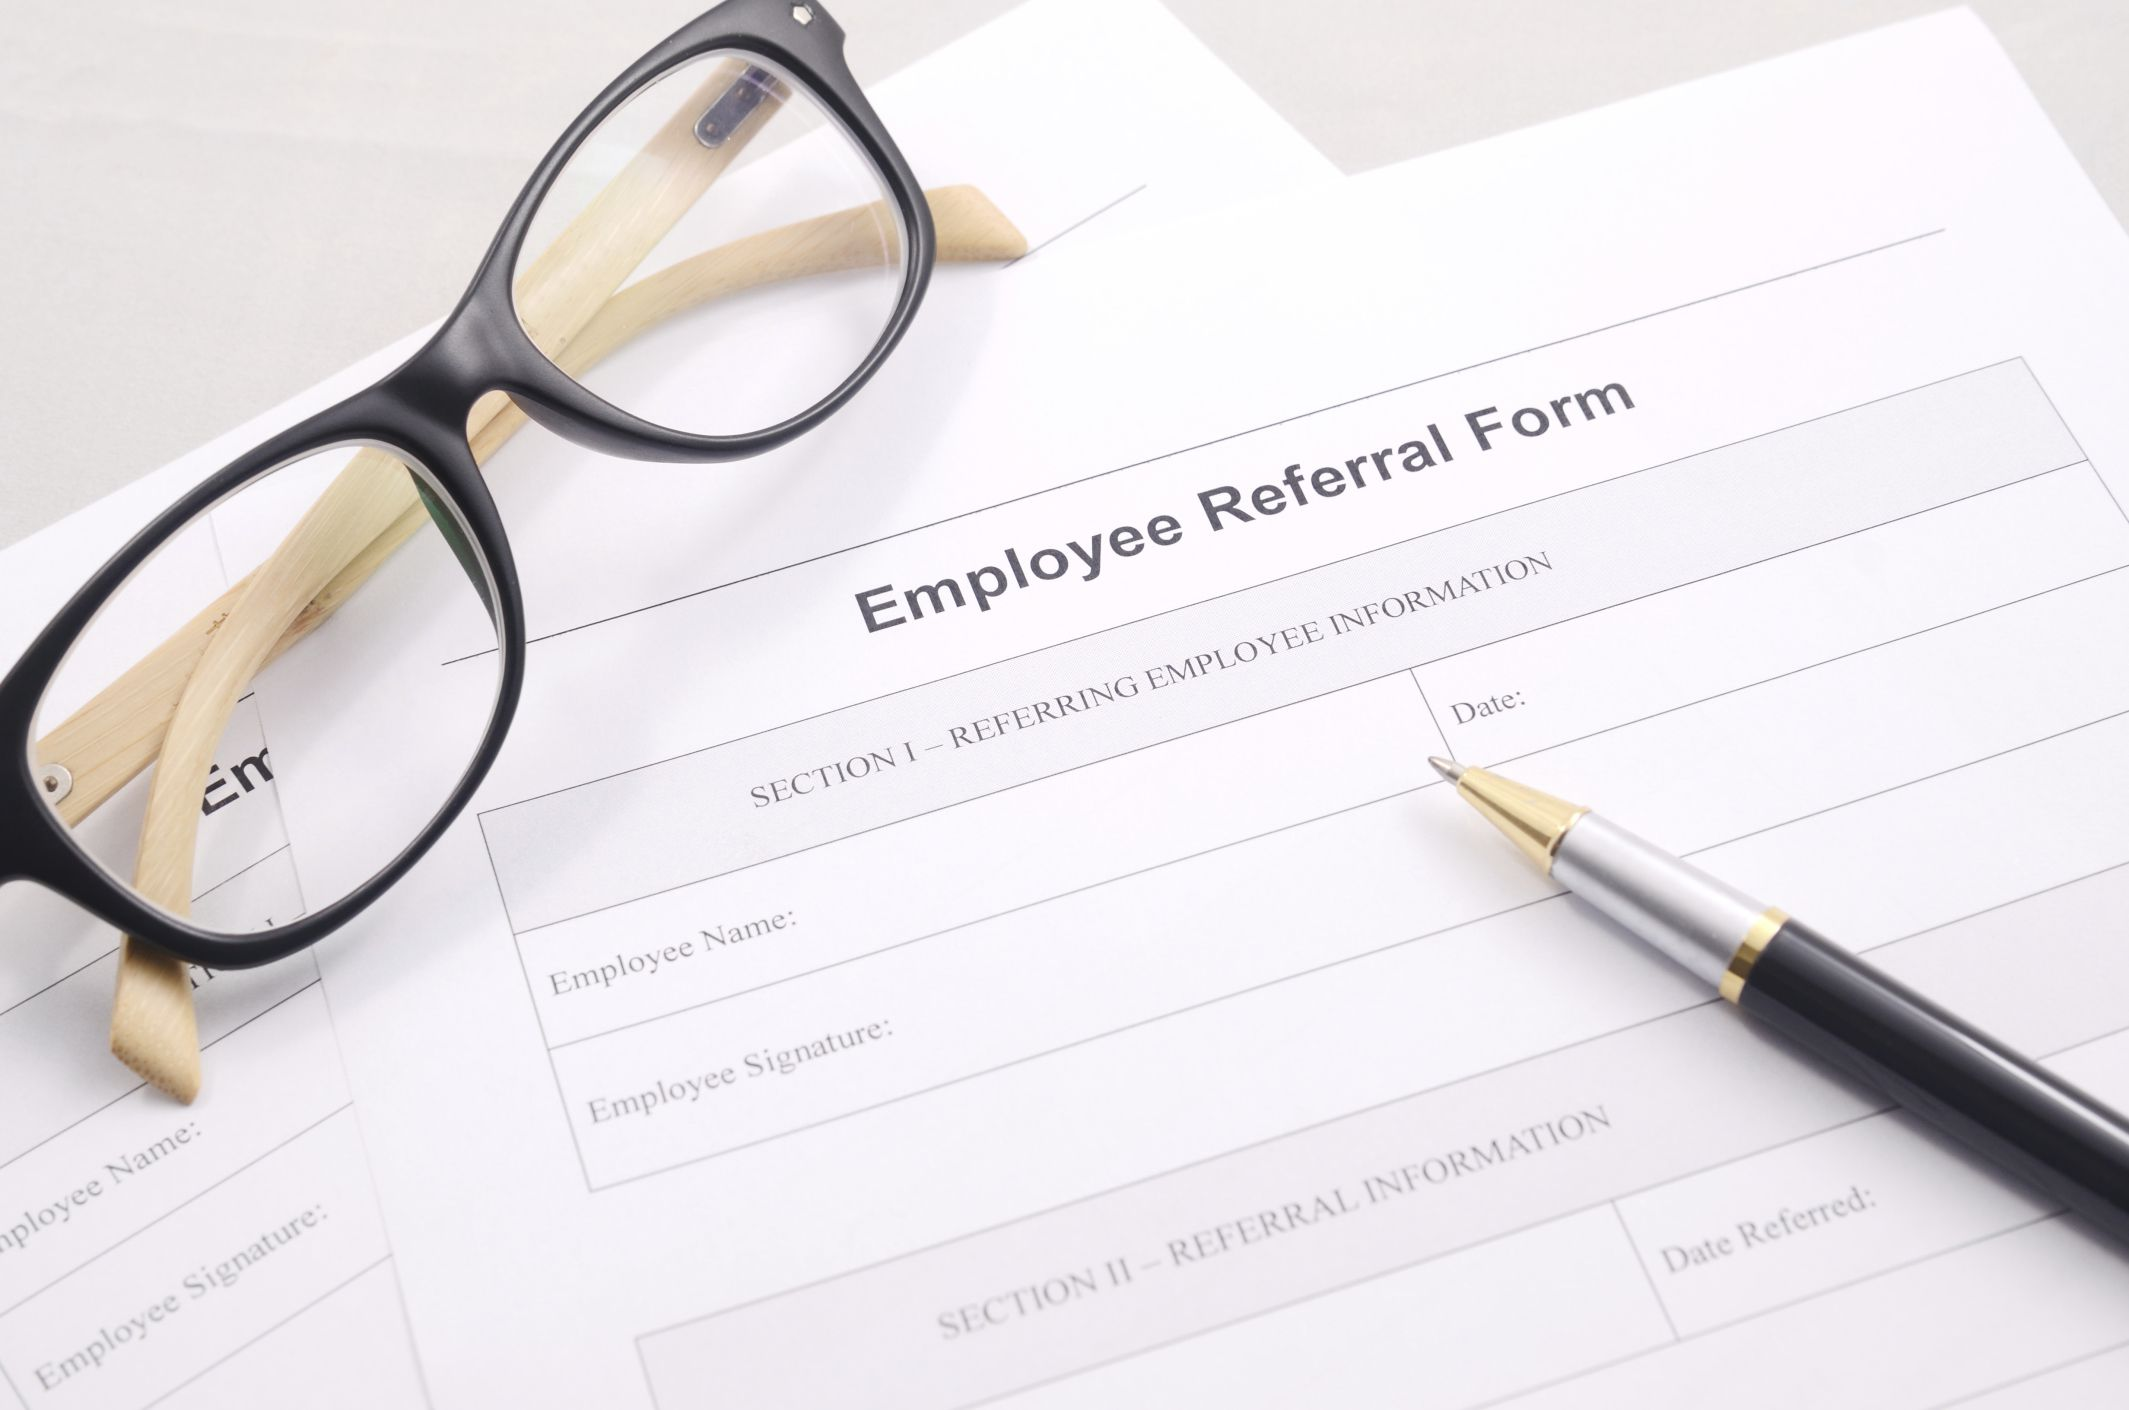 Learn How to Ask for a Referral for a Job